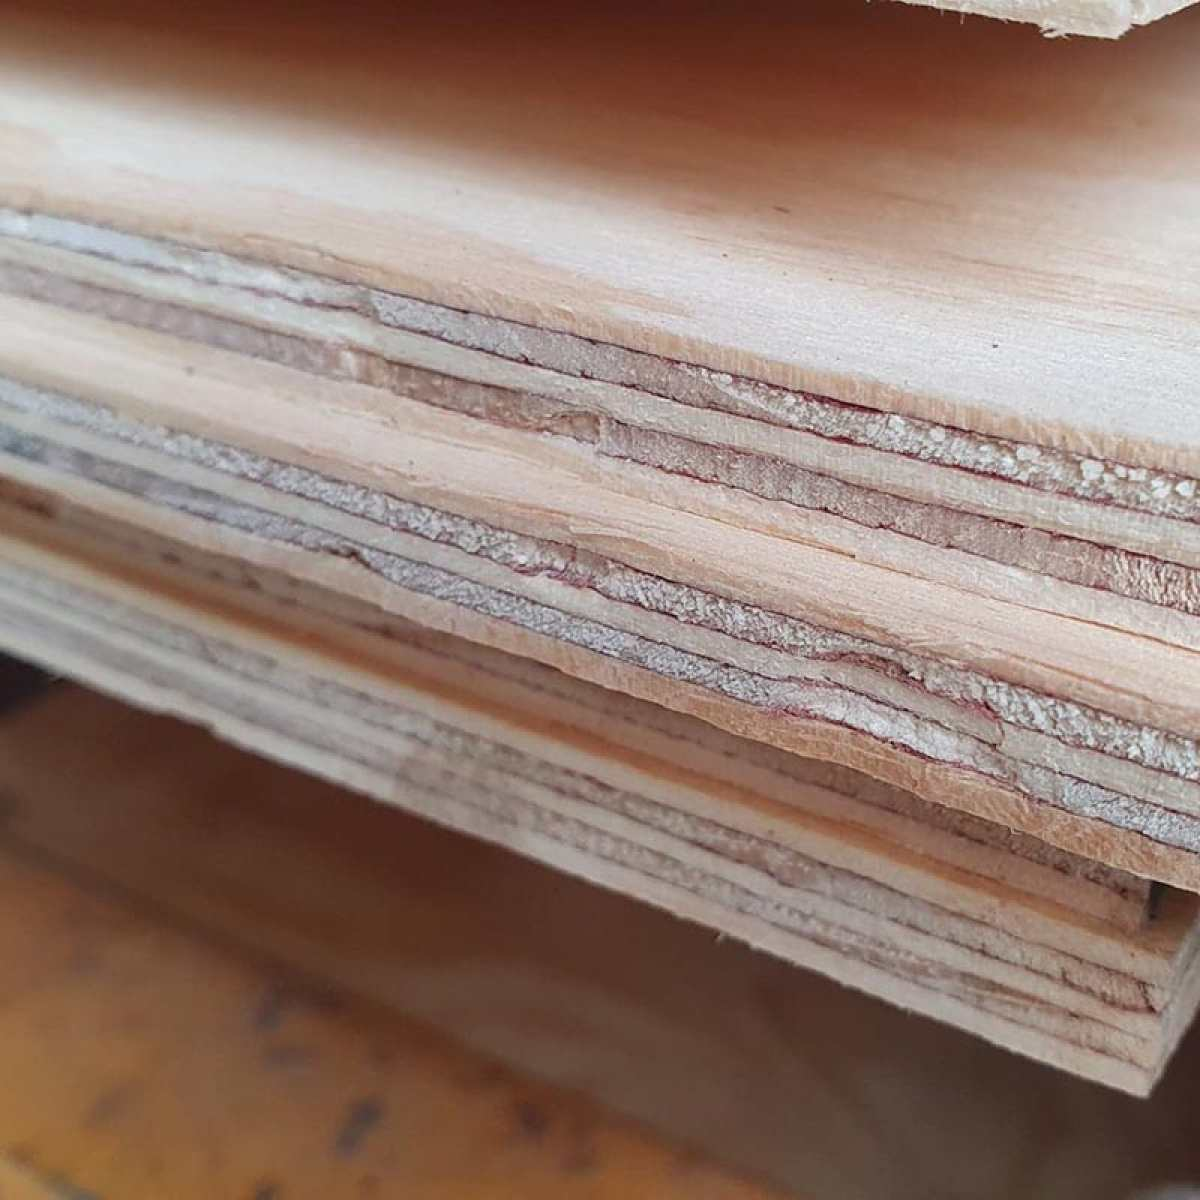 birch laser ply sheet material websterstimber 800x800 1 Image by Websters Timber